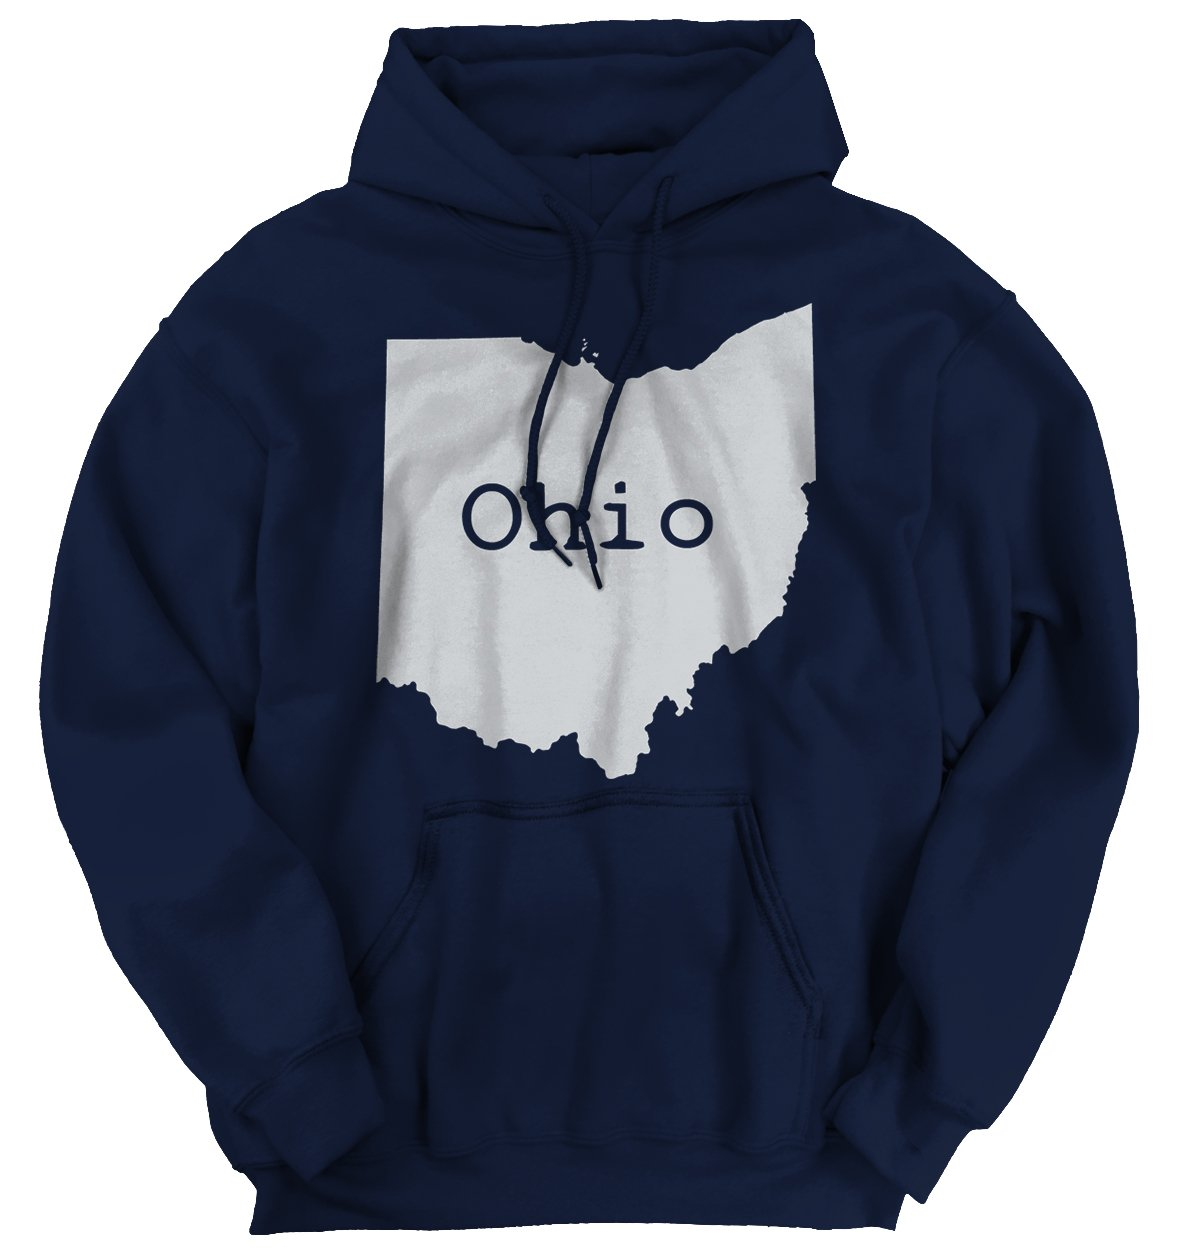 Ohio State Shirt State Pride USA T Novelty Gift Ideas Cool Hoodie Sweatshirt